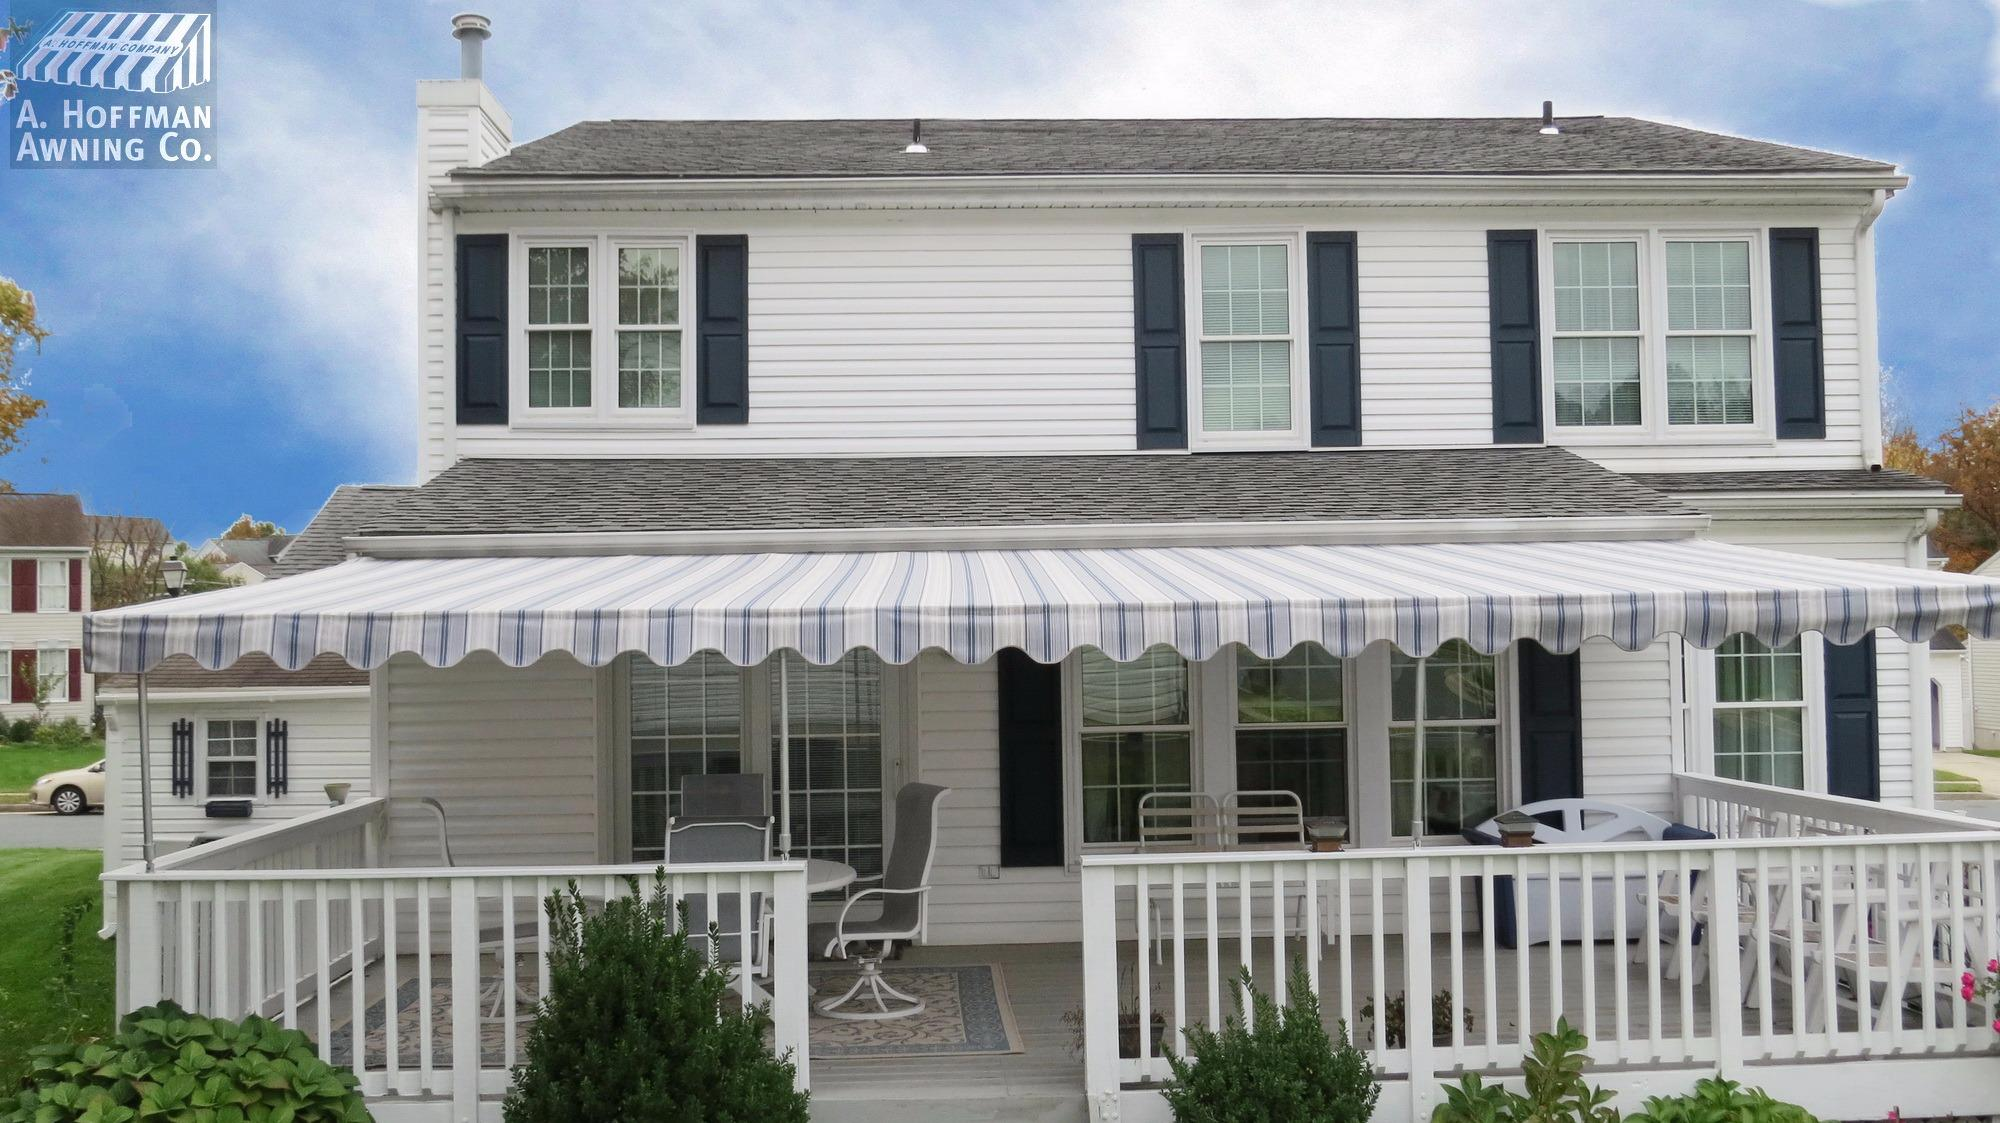 A. Hoffman Awning in Baltimore     410-685-5687     A porch awning for this Baltimore home has given the home an elegant facade and increased living space for the homeowners.